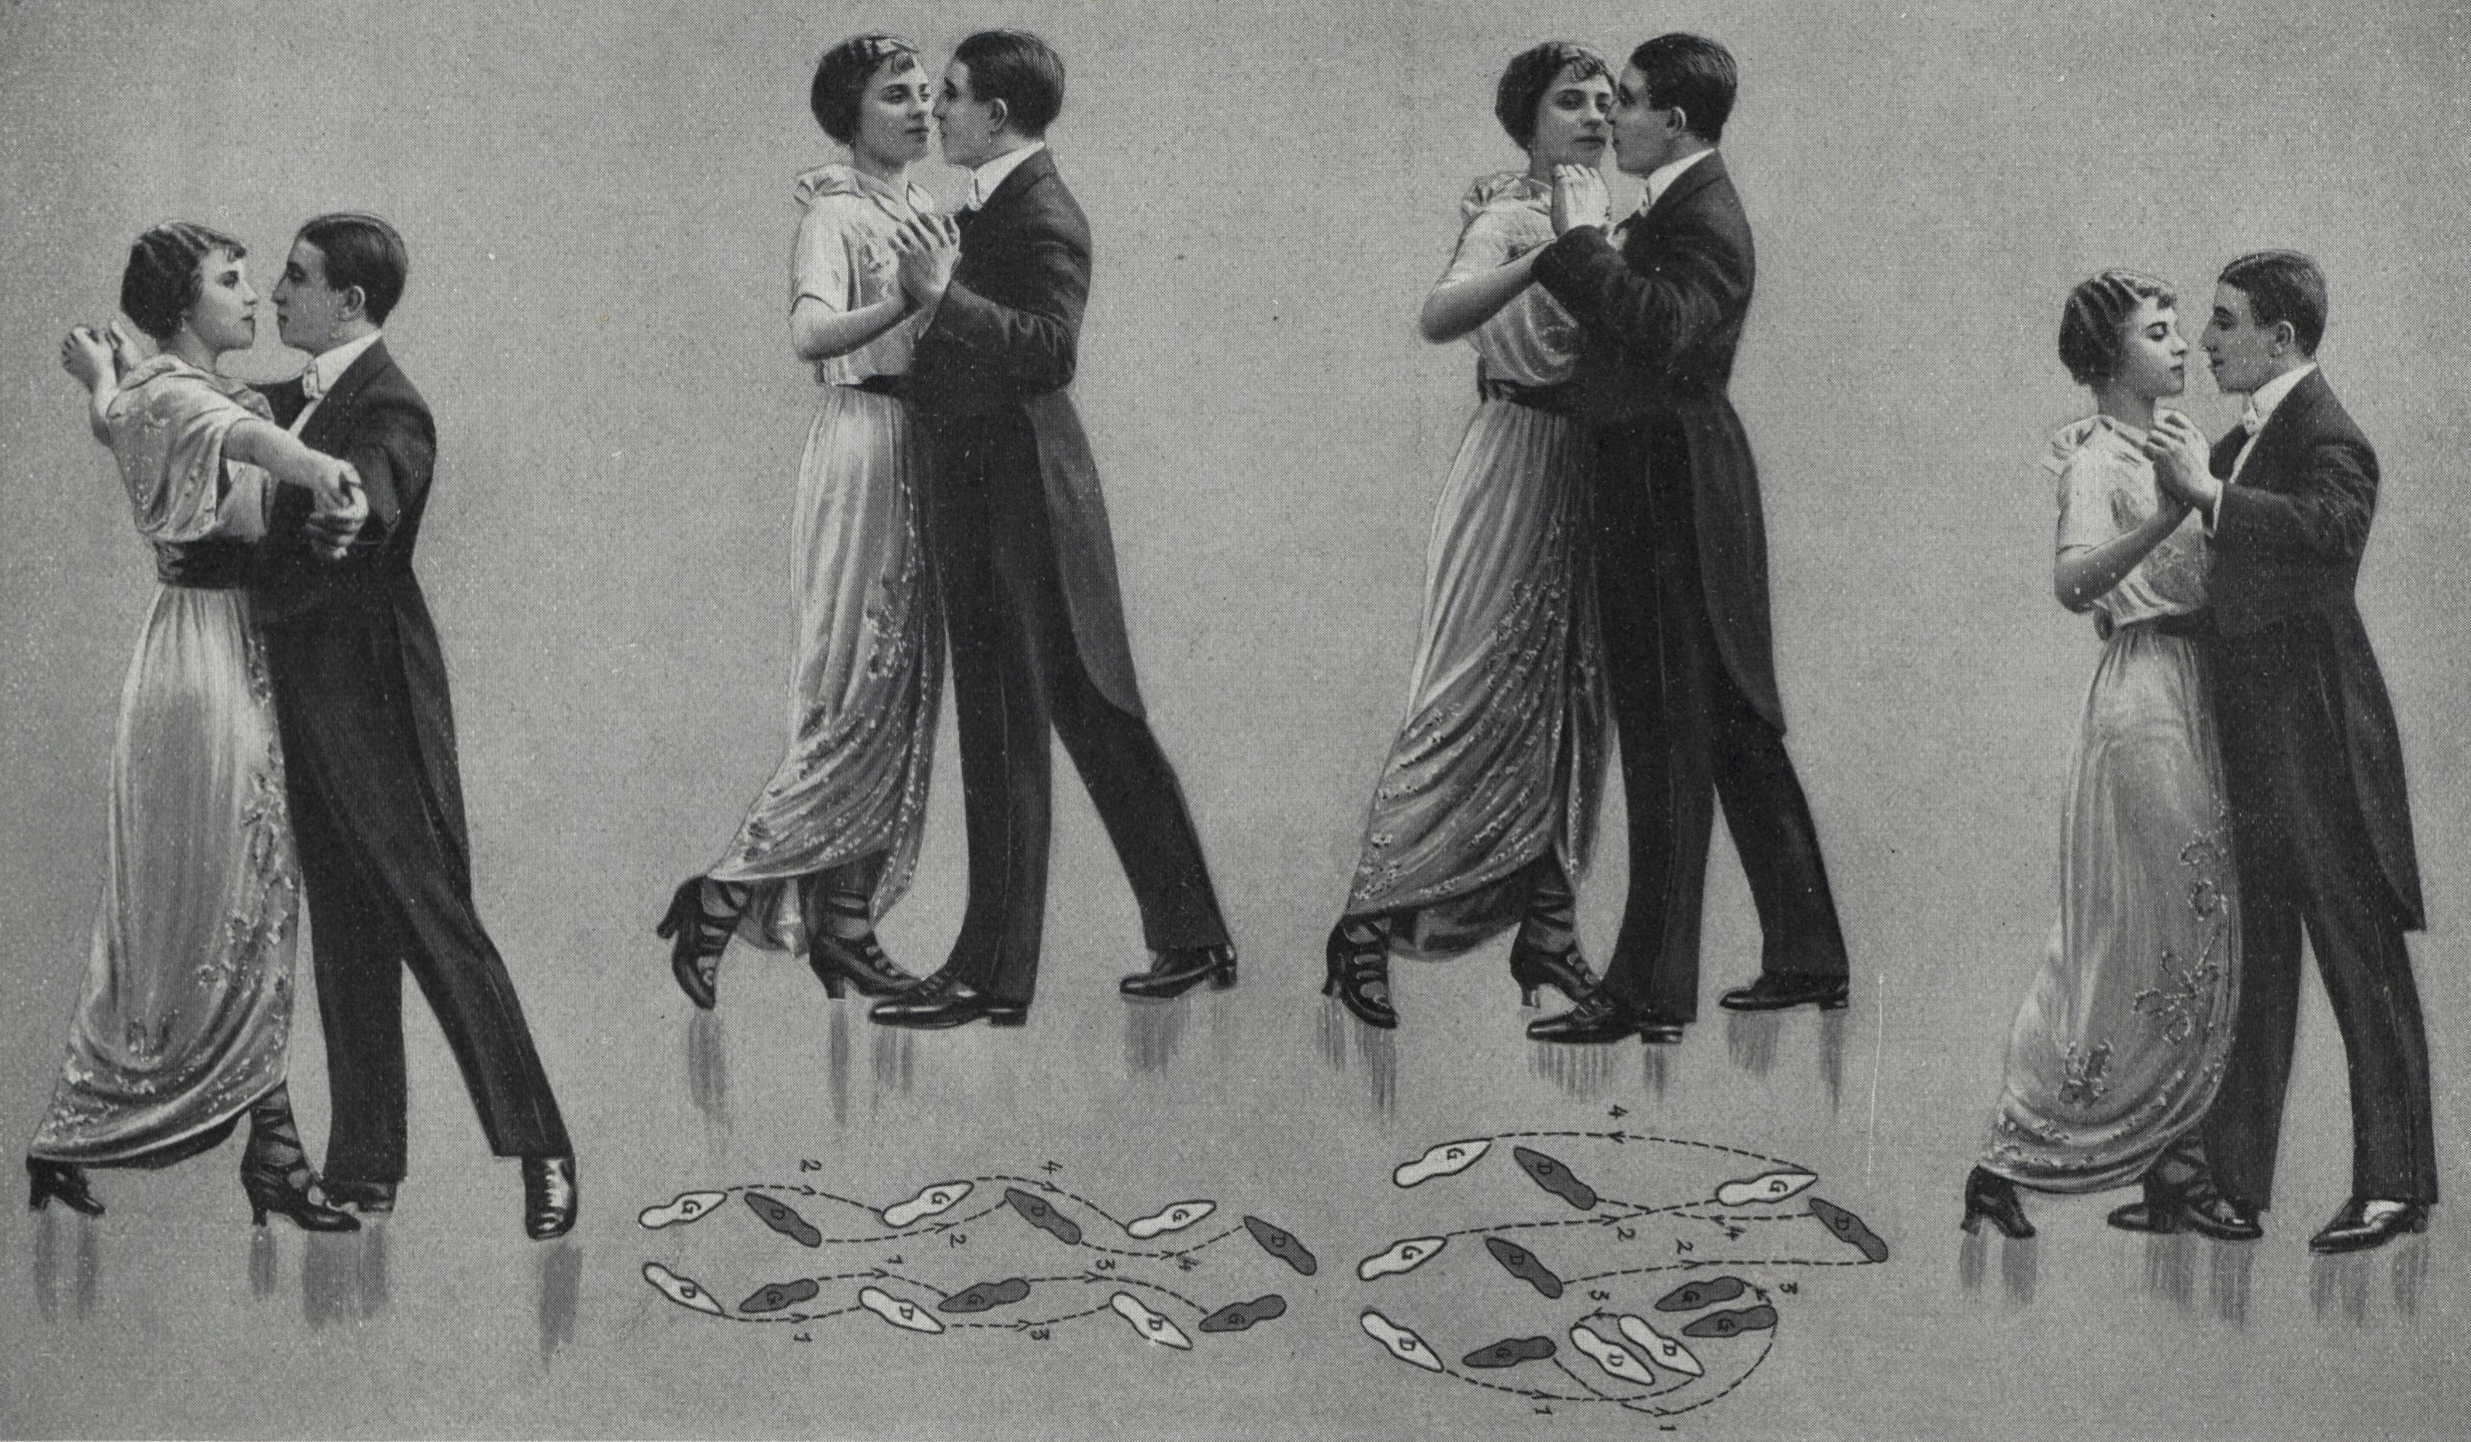 Library Of Dance Early Tango Argentine Steps Diagram Look At This Back The Follow Four Starting Leads Right 1 2 3 4 Then Step Forward 6 Replace 7 8